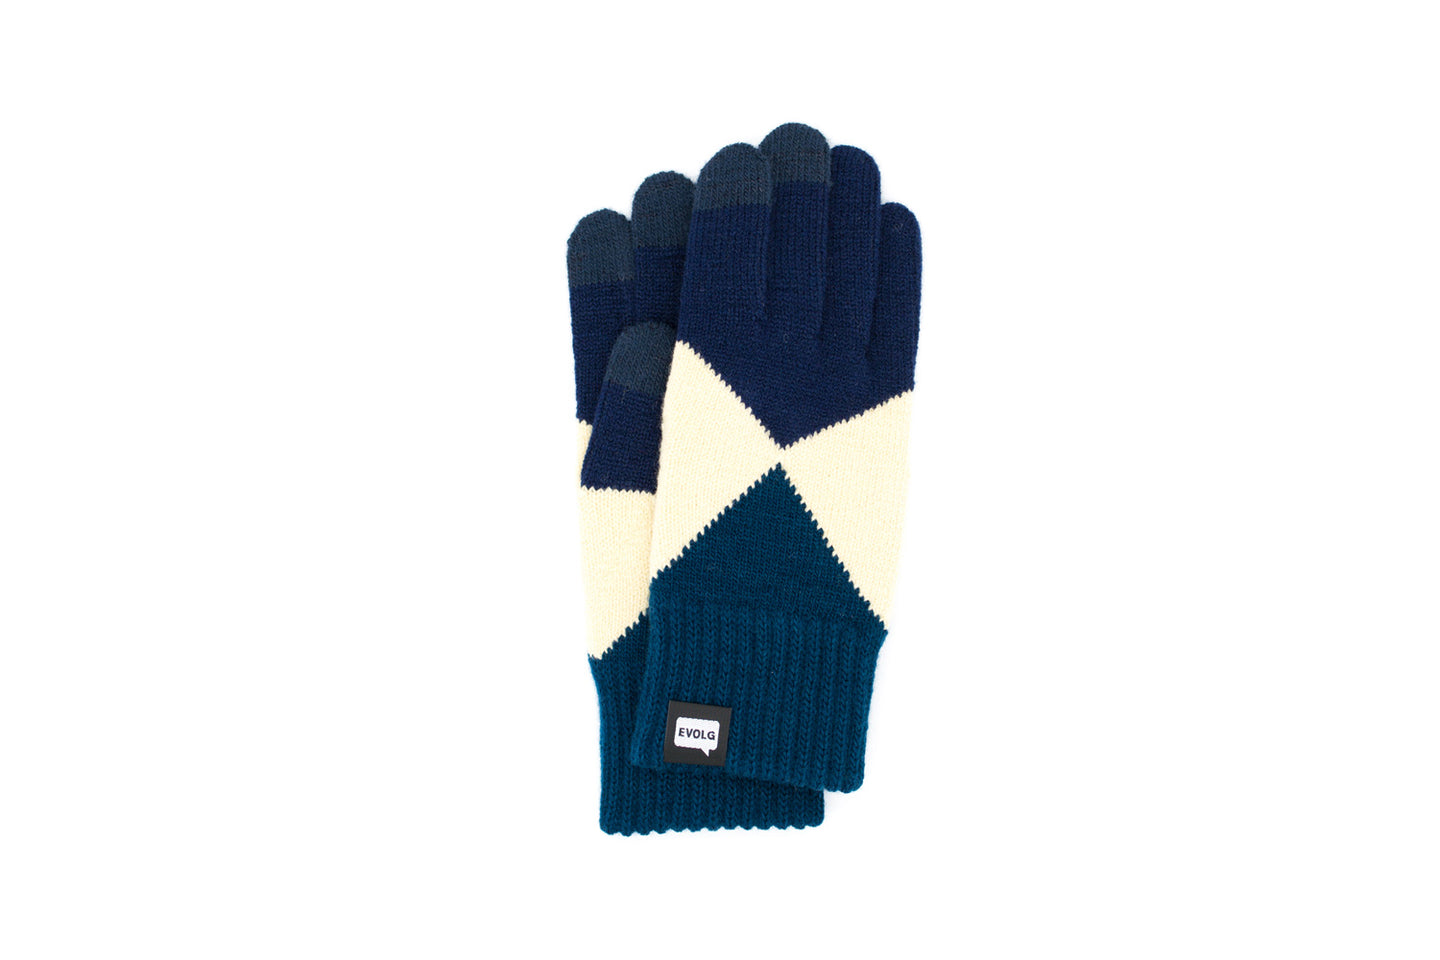 Evolg Mirage Touchscreen Gloves Navy x Vanilla x Deep Blue